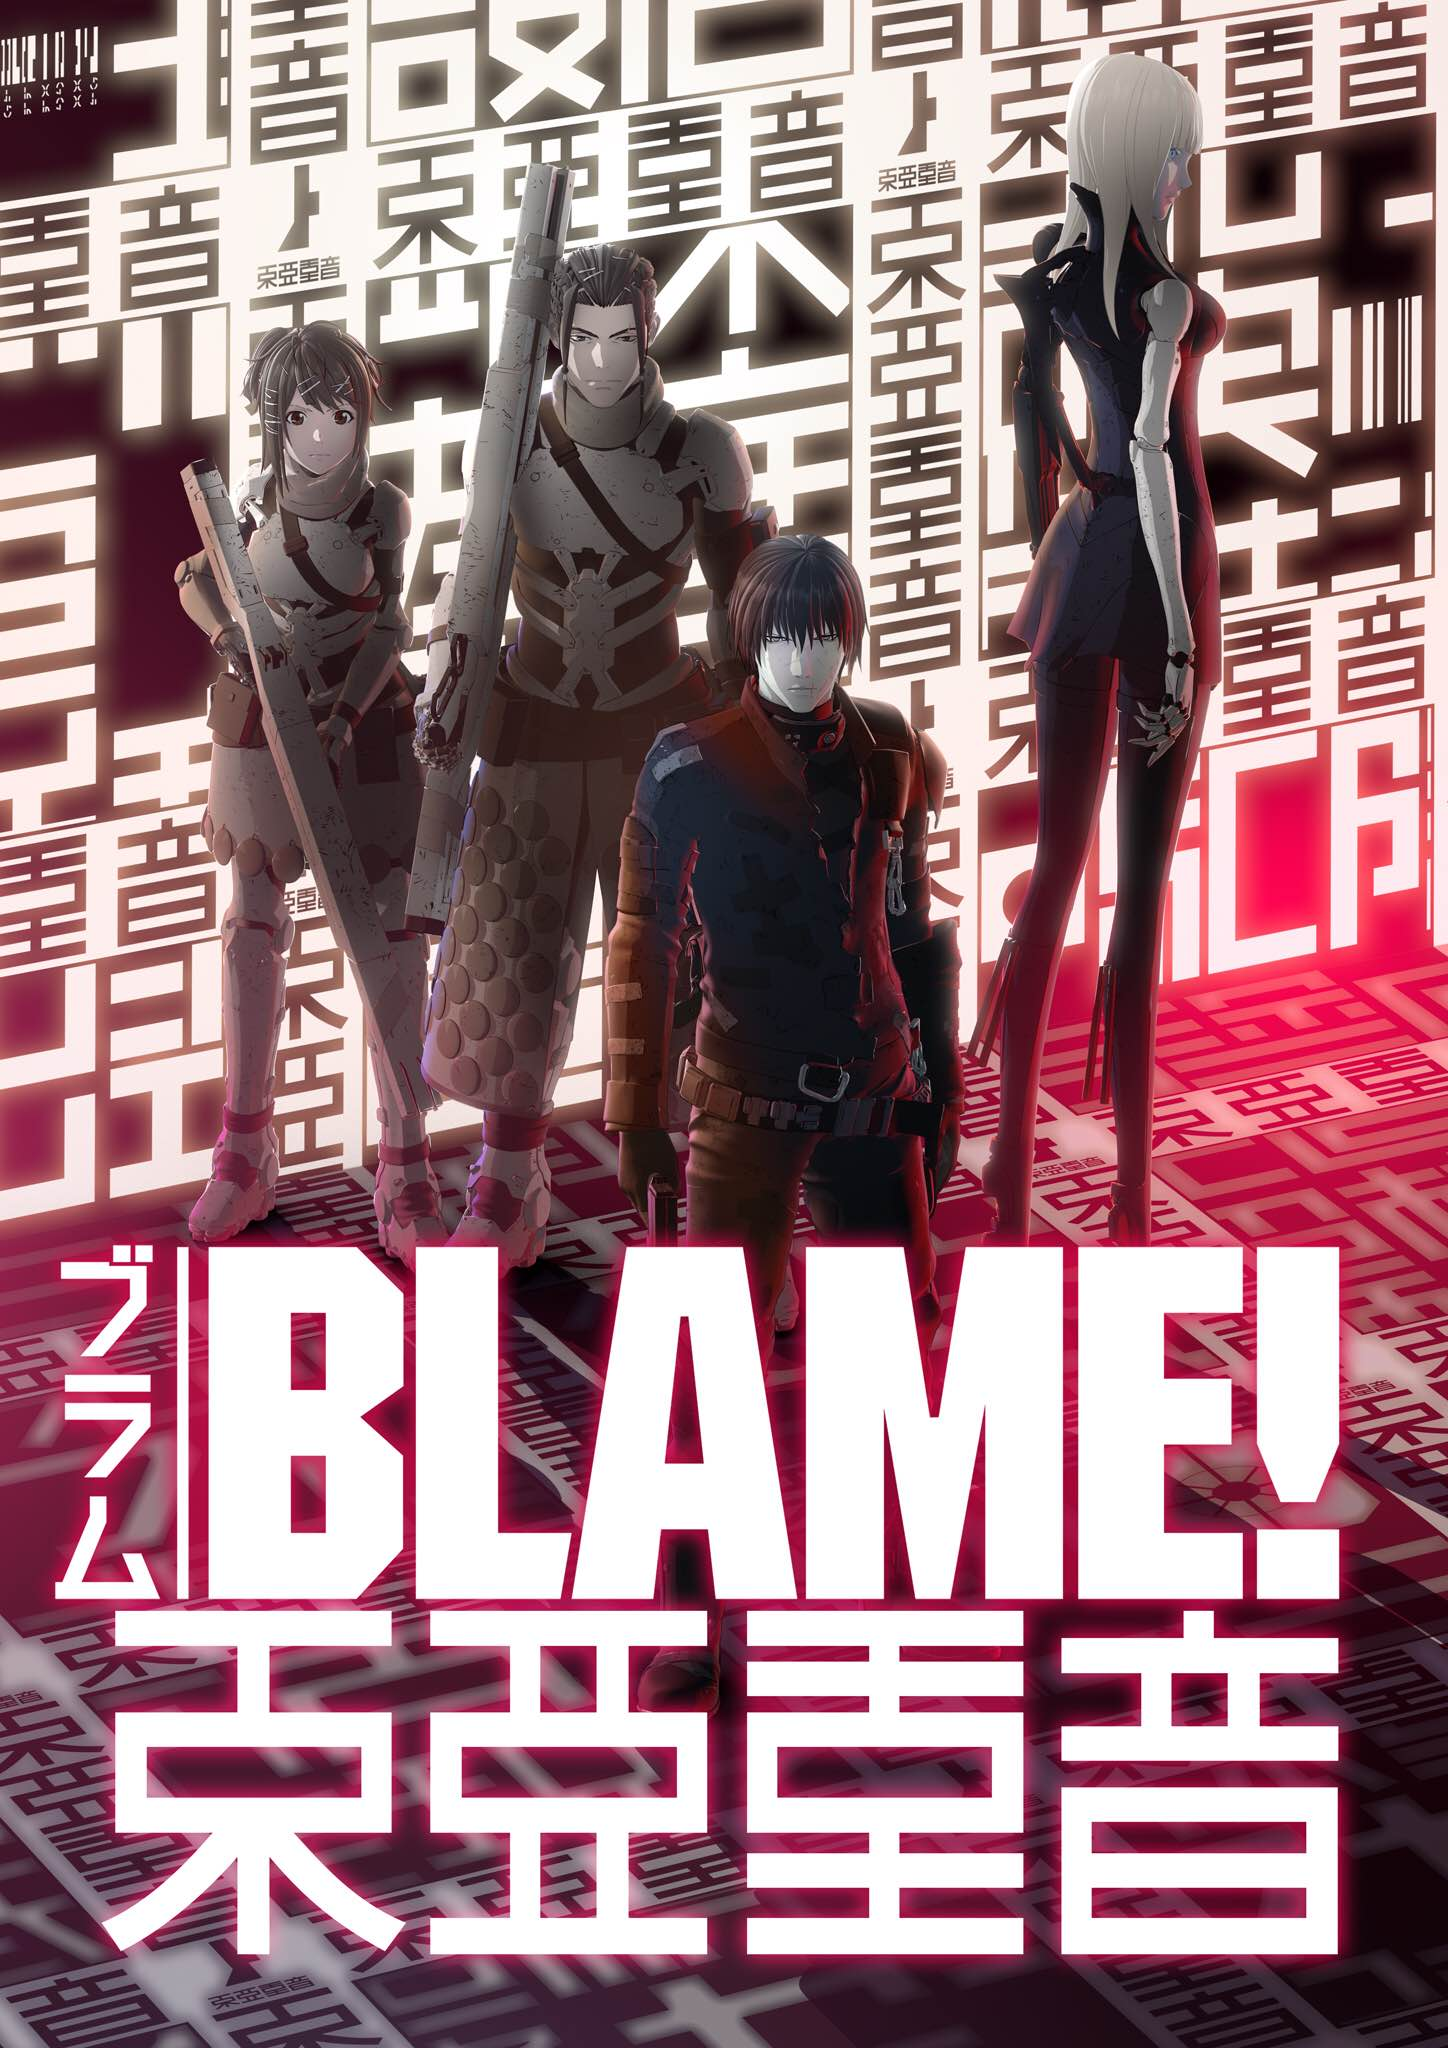 Anime movie 'BLAME!'